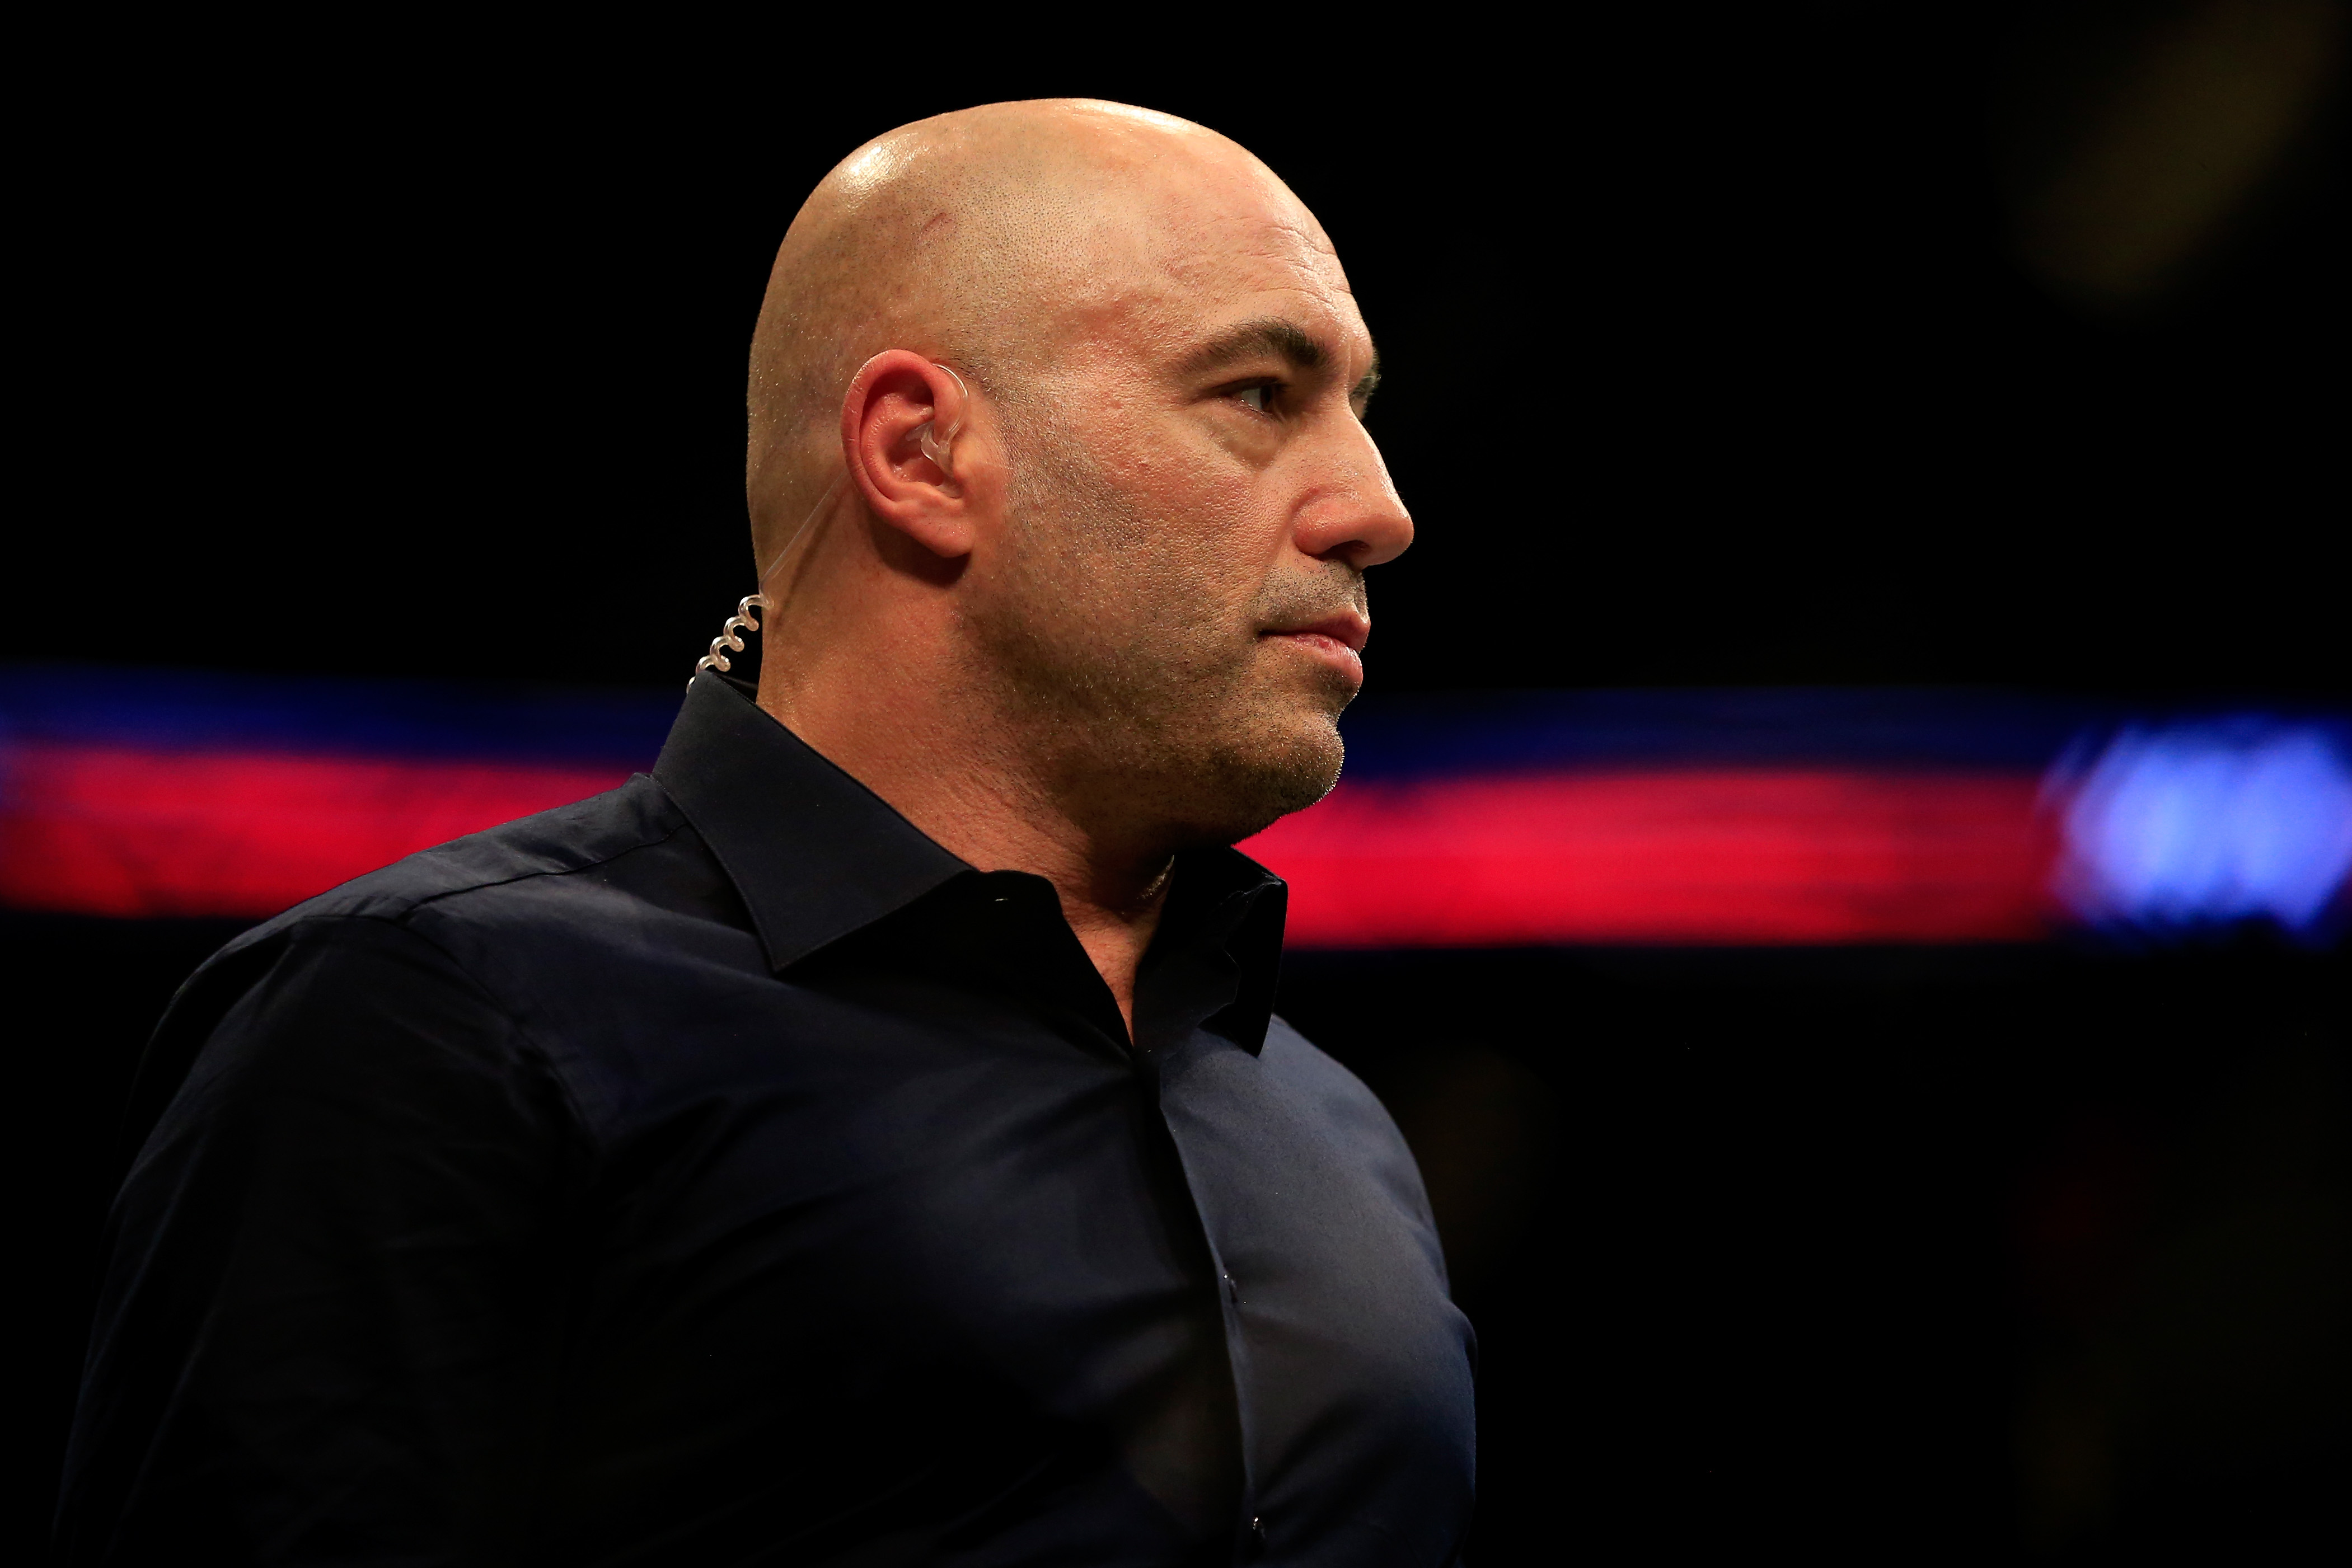 Joe Rogan at the Prudential Center in Newark, New Jersey. (Photo by Alex Trautwig/Getty Images)